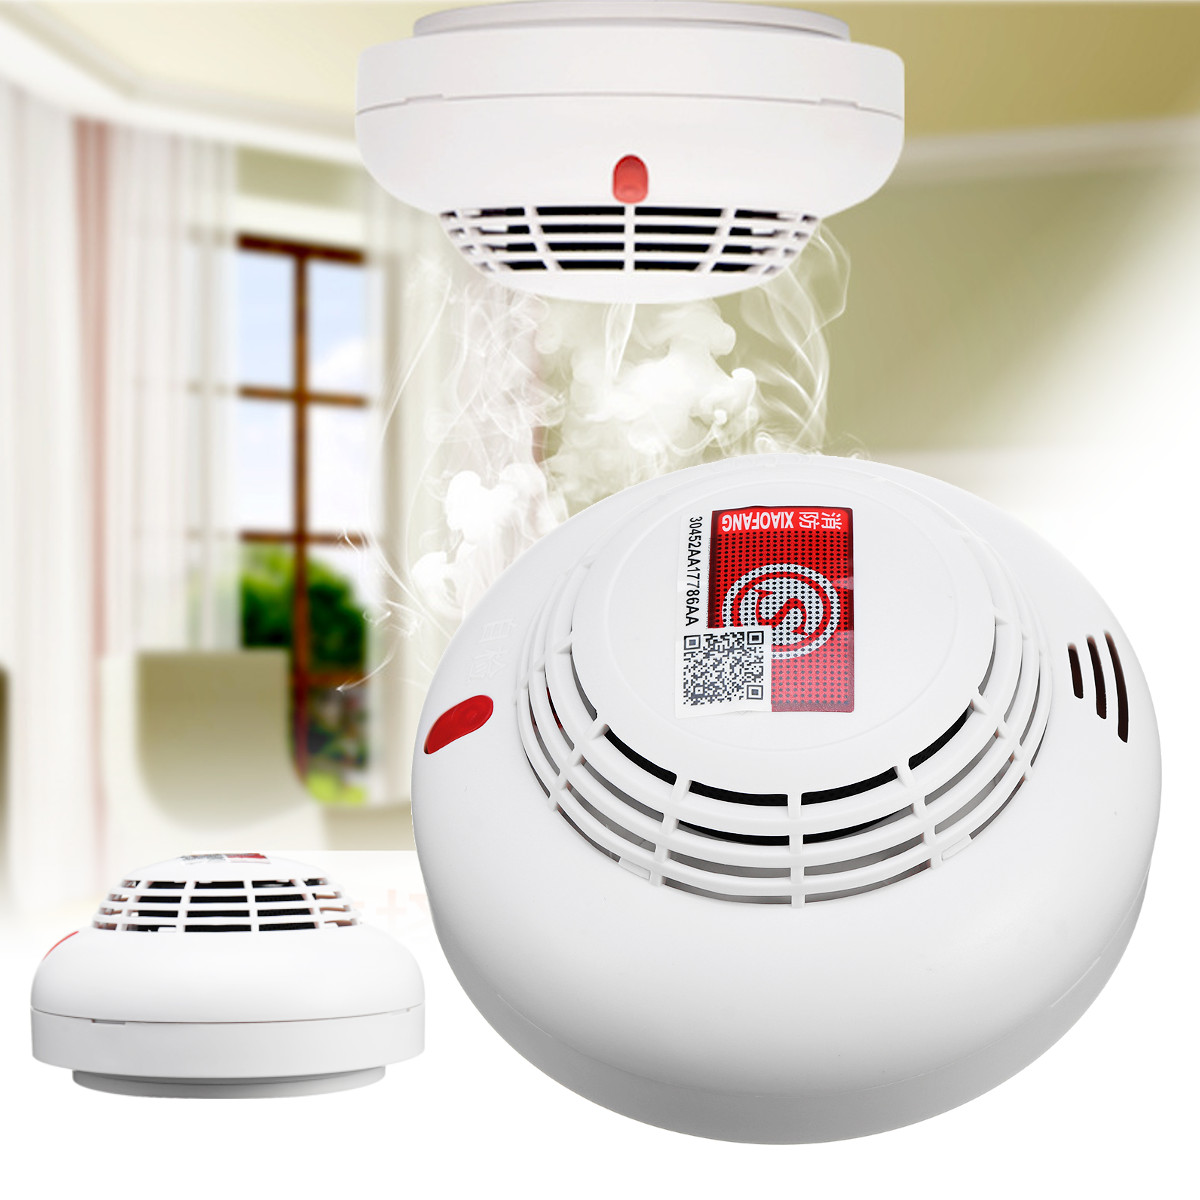 Photoelectic Smoke Detector Fire Sensor Alarm Battery Operated Home Security